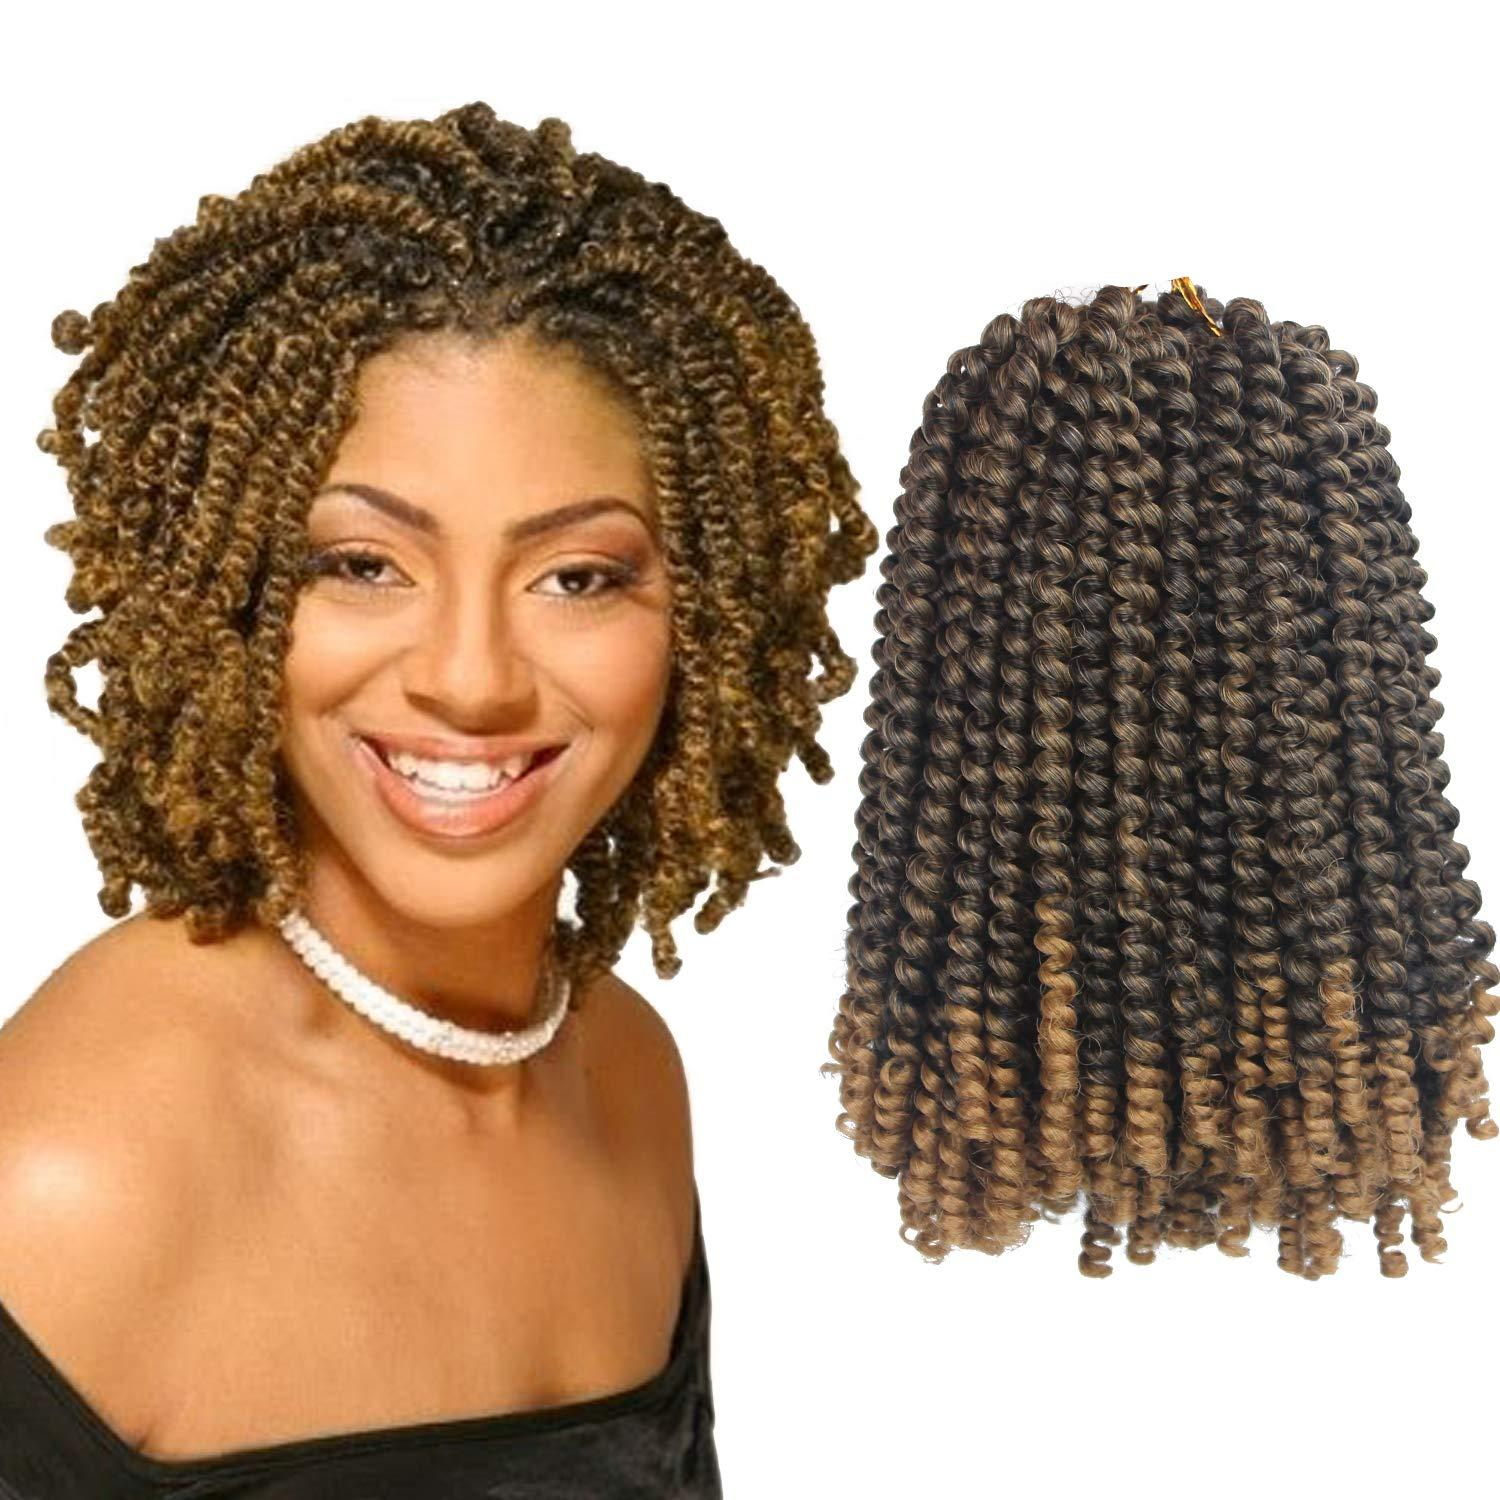 Jamaican Twists Hairstyles: 8inch Synthetic Jamaican Bounce Short Fluffy Hair